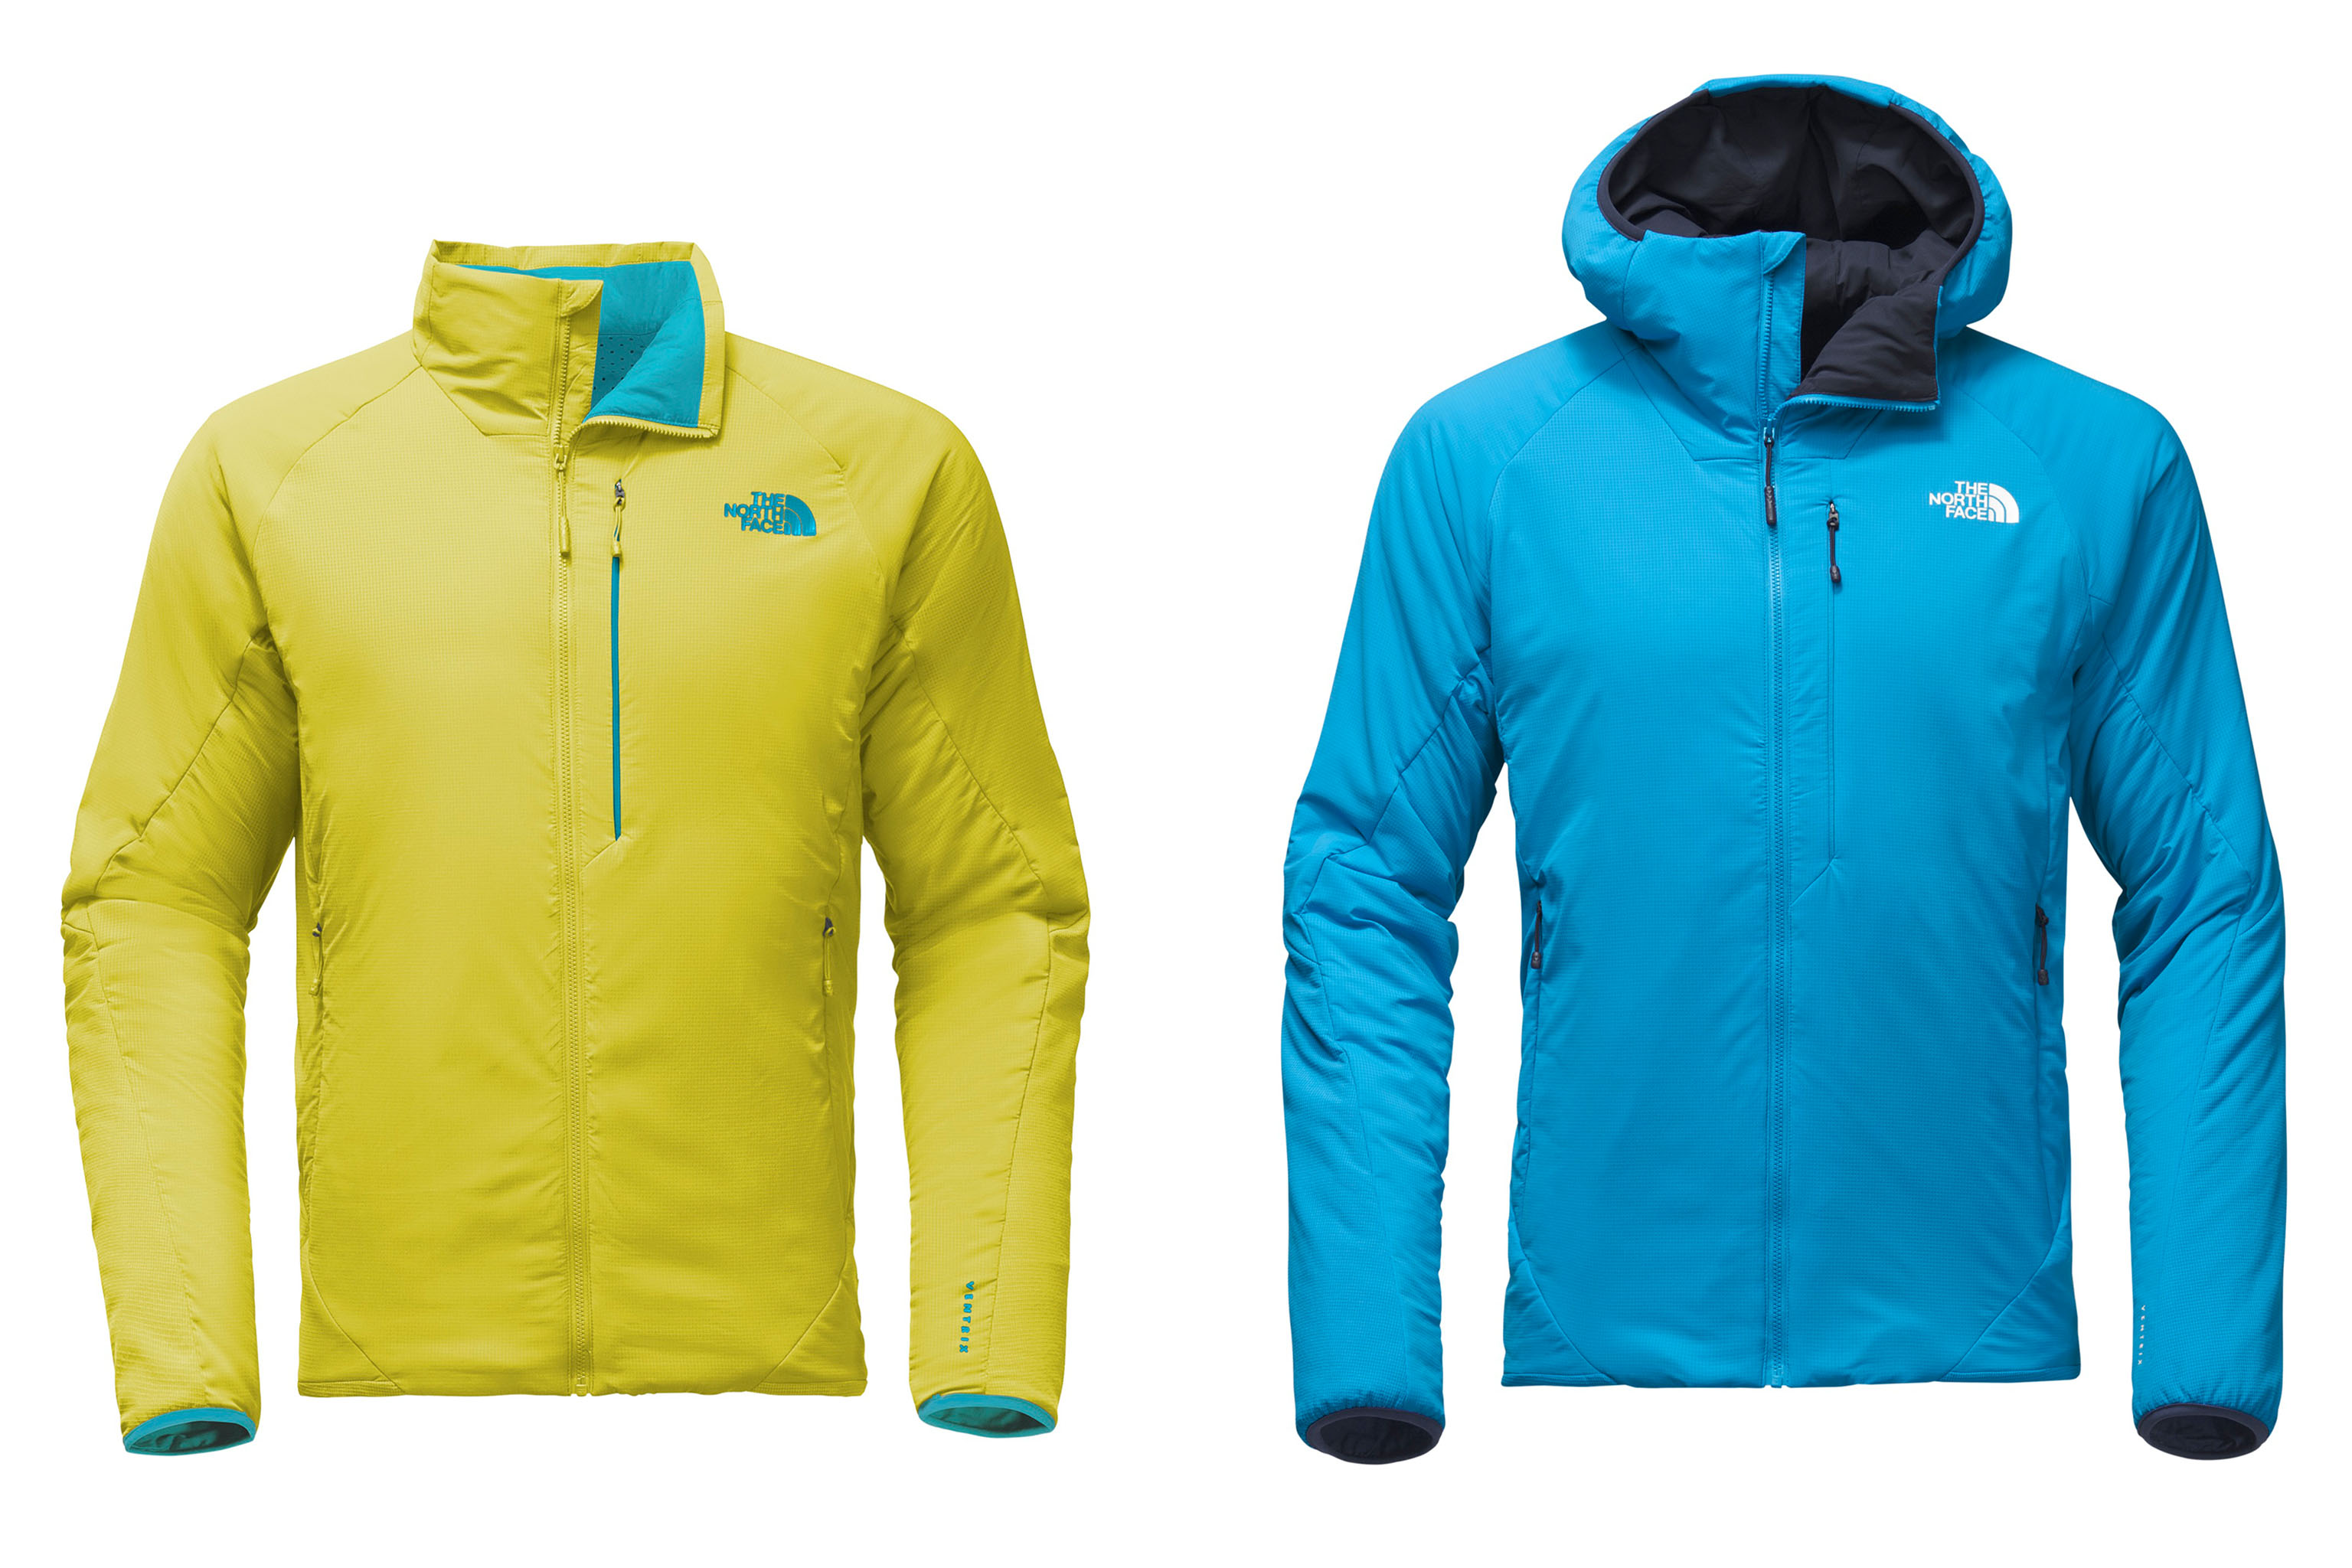 Looks from The North Face's Ventrix line.